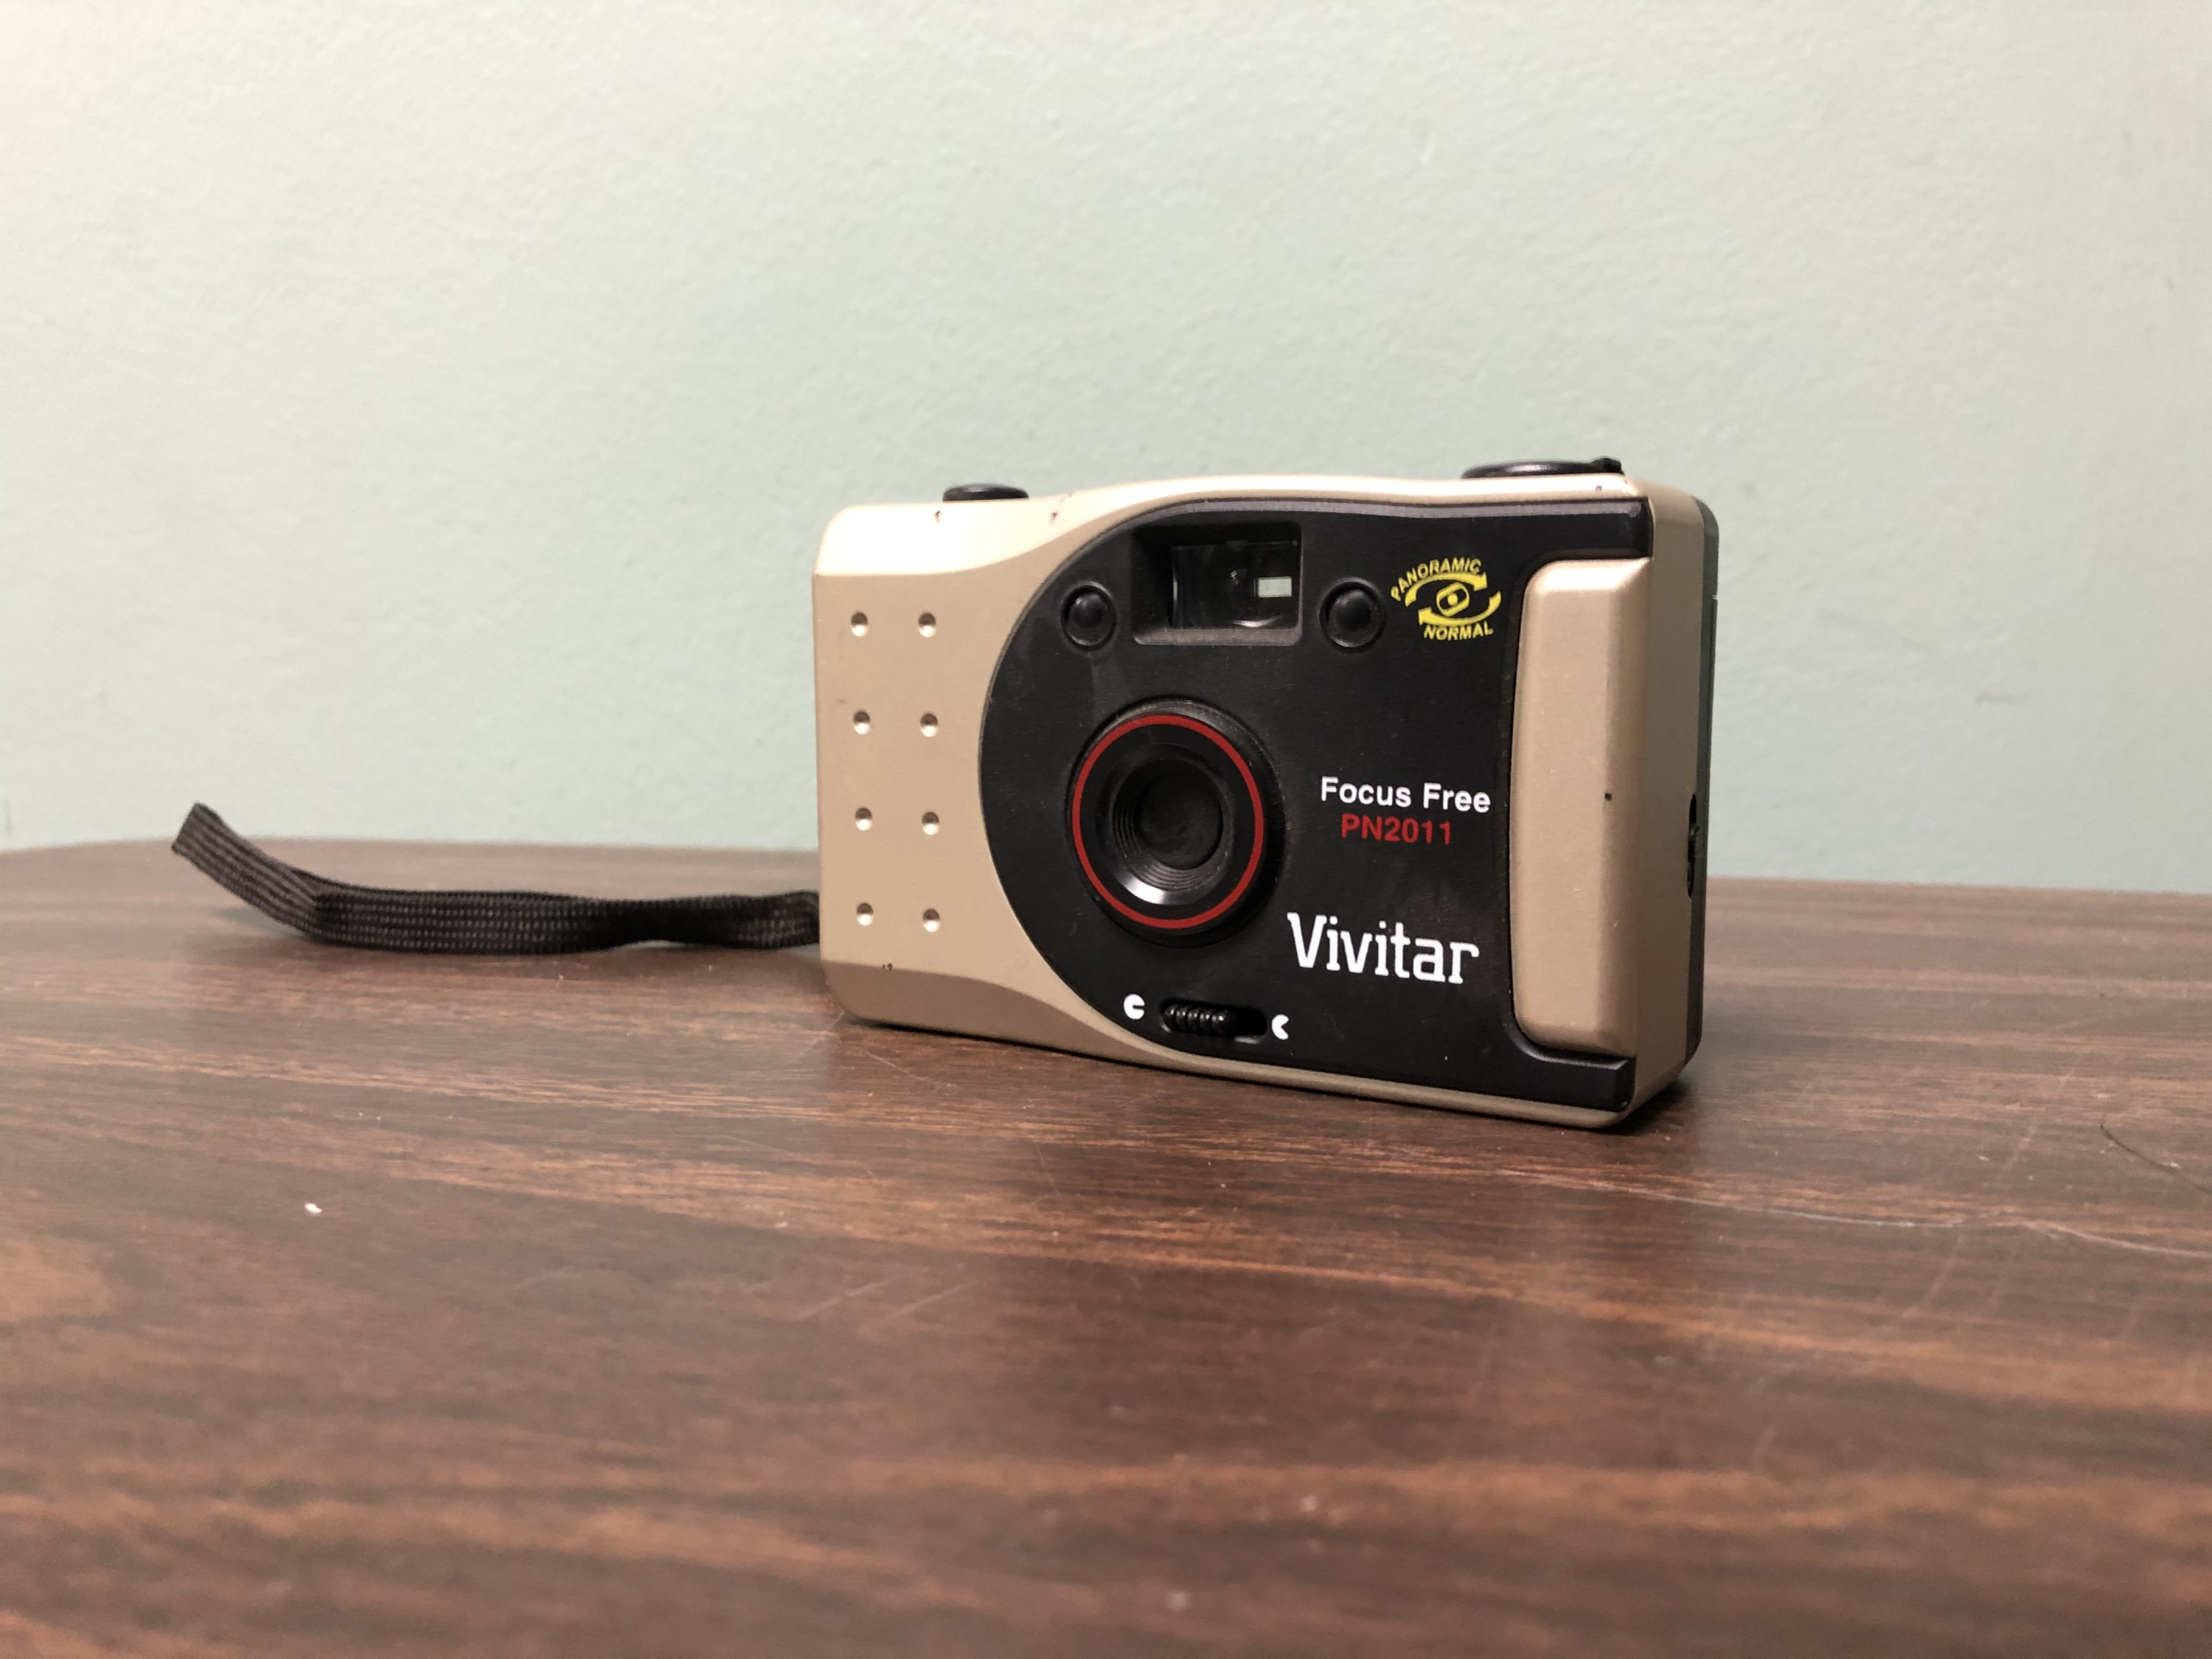 Vivitar Point and Shoot Camera